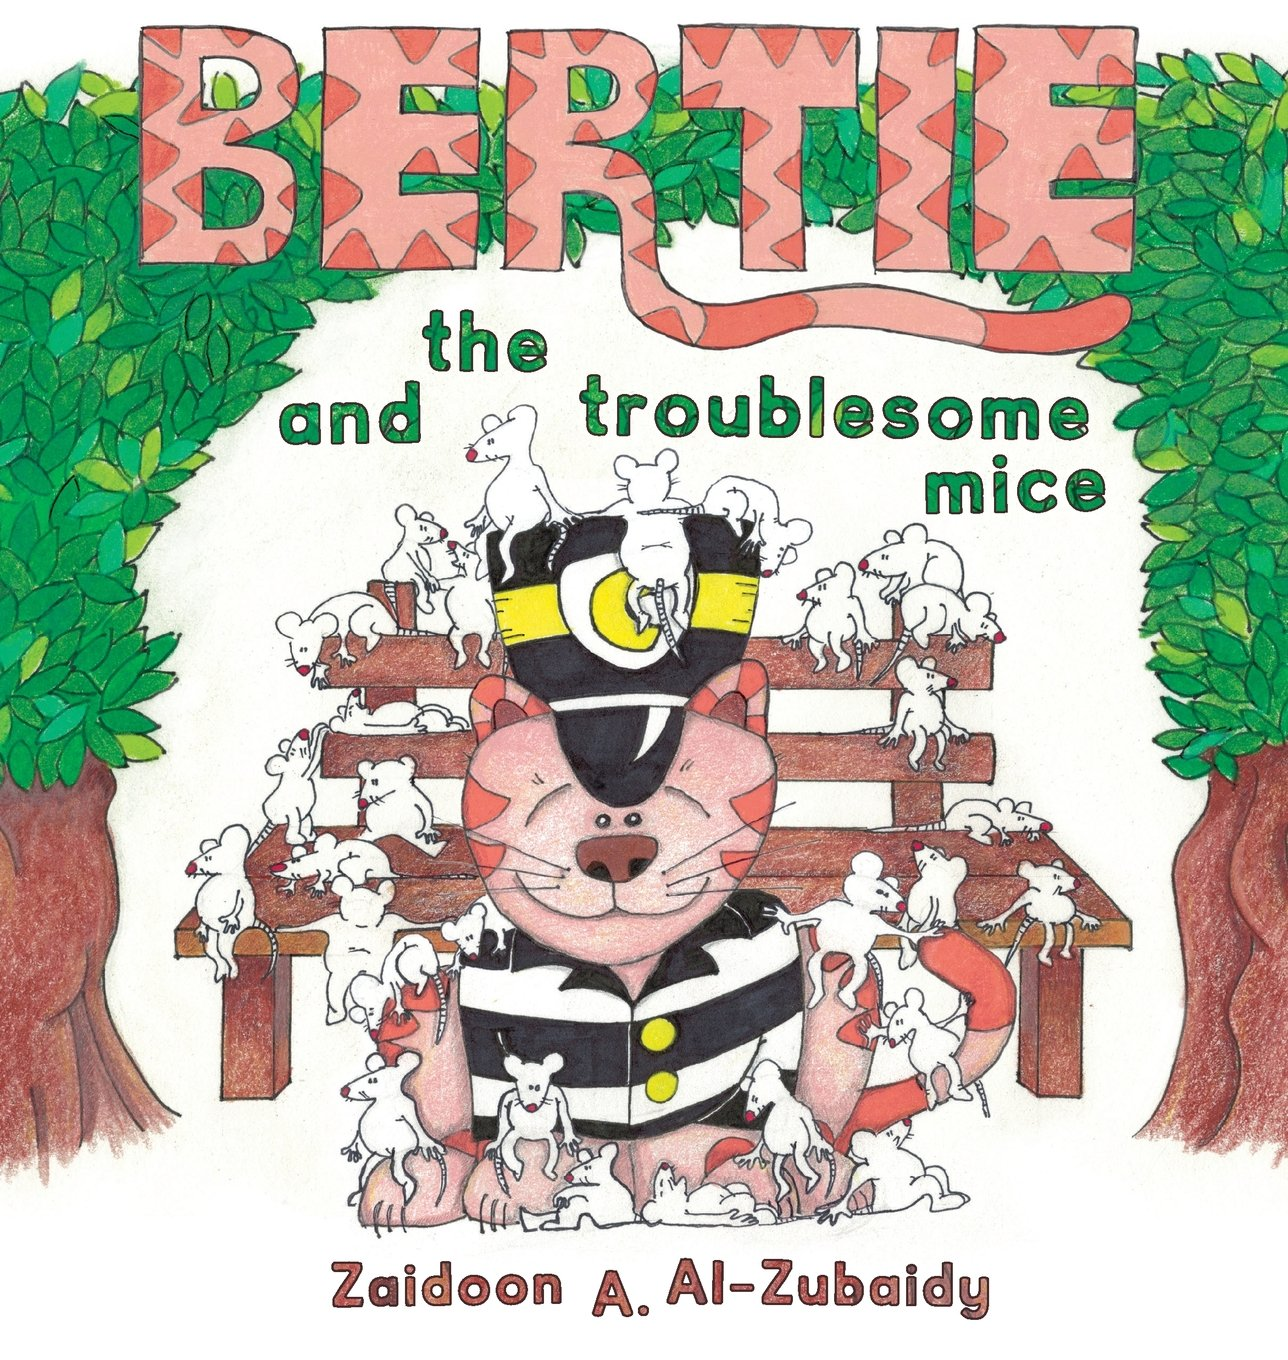 Review: Bertie and the troublesome mice – Zaidoon A  Al-Zubaidy